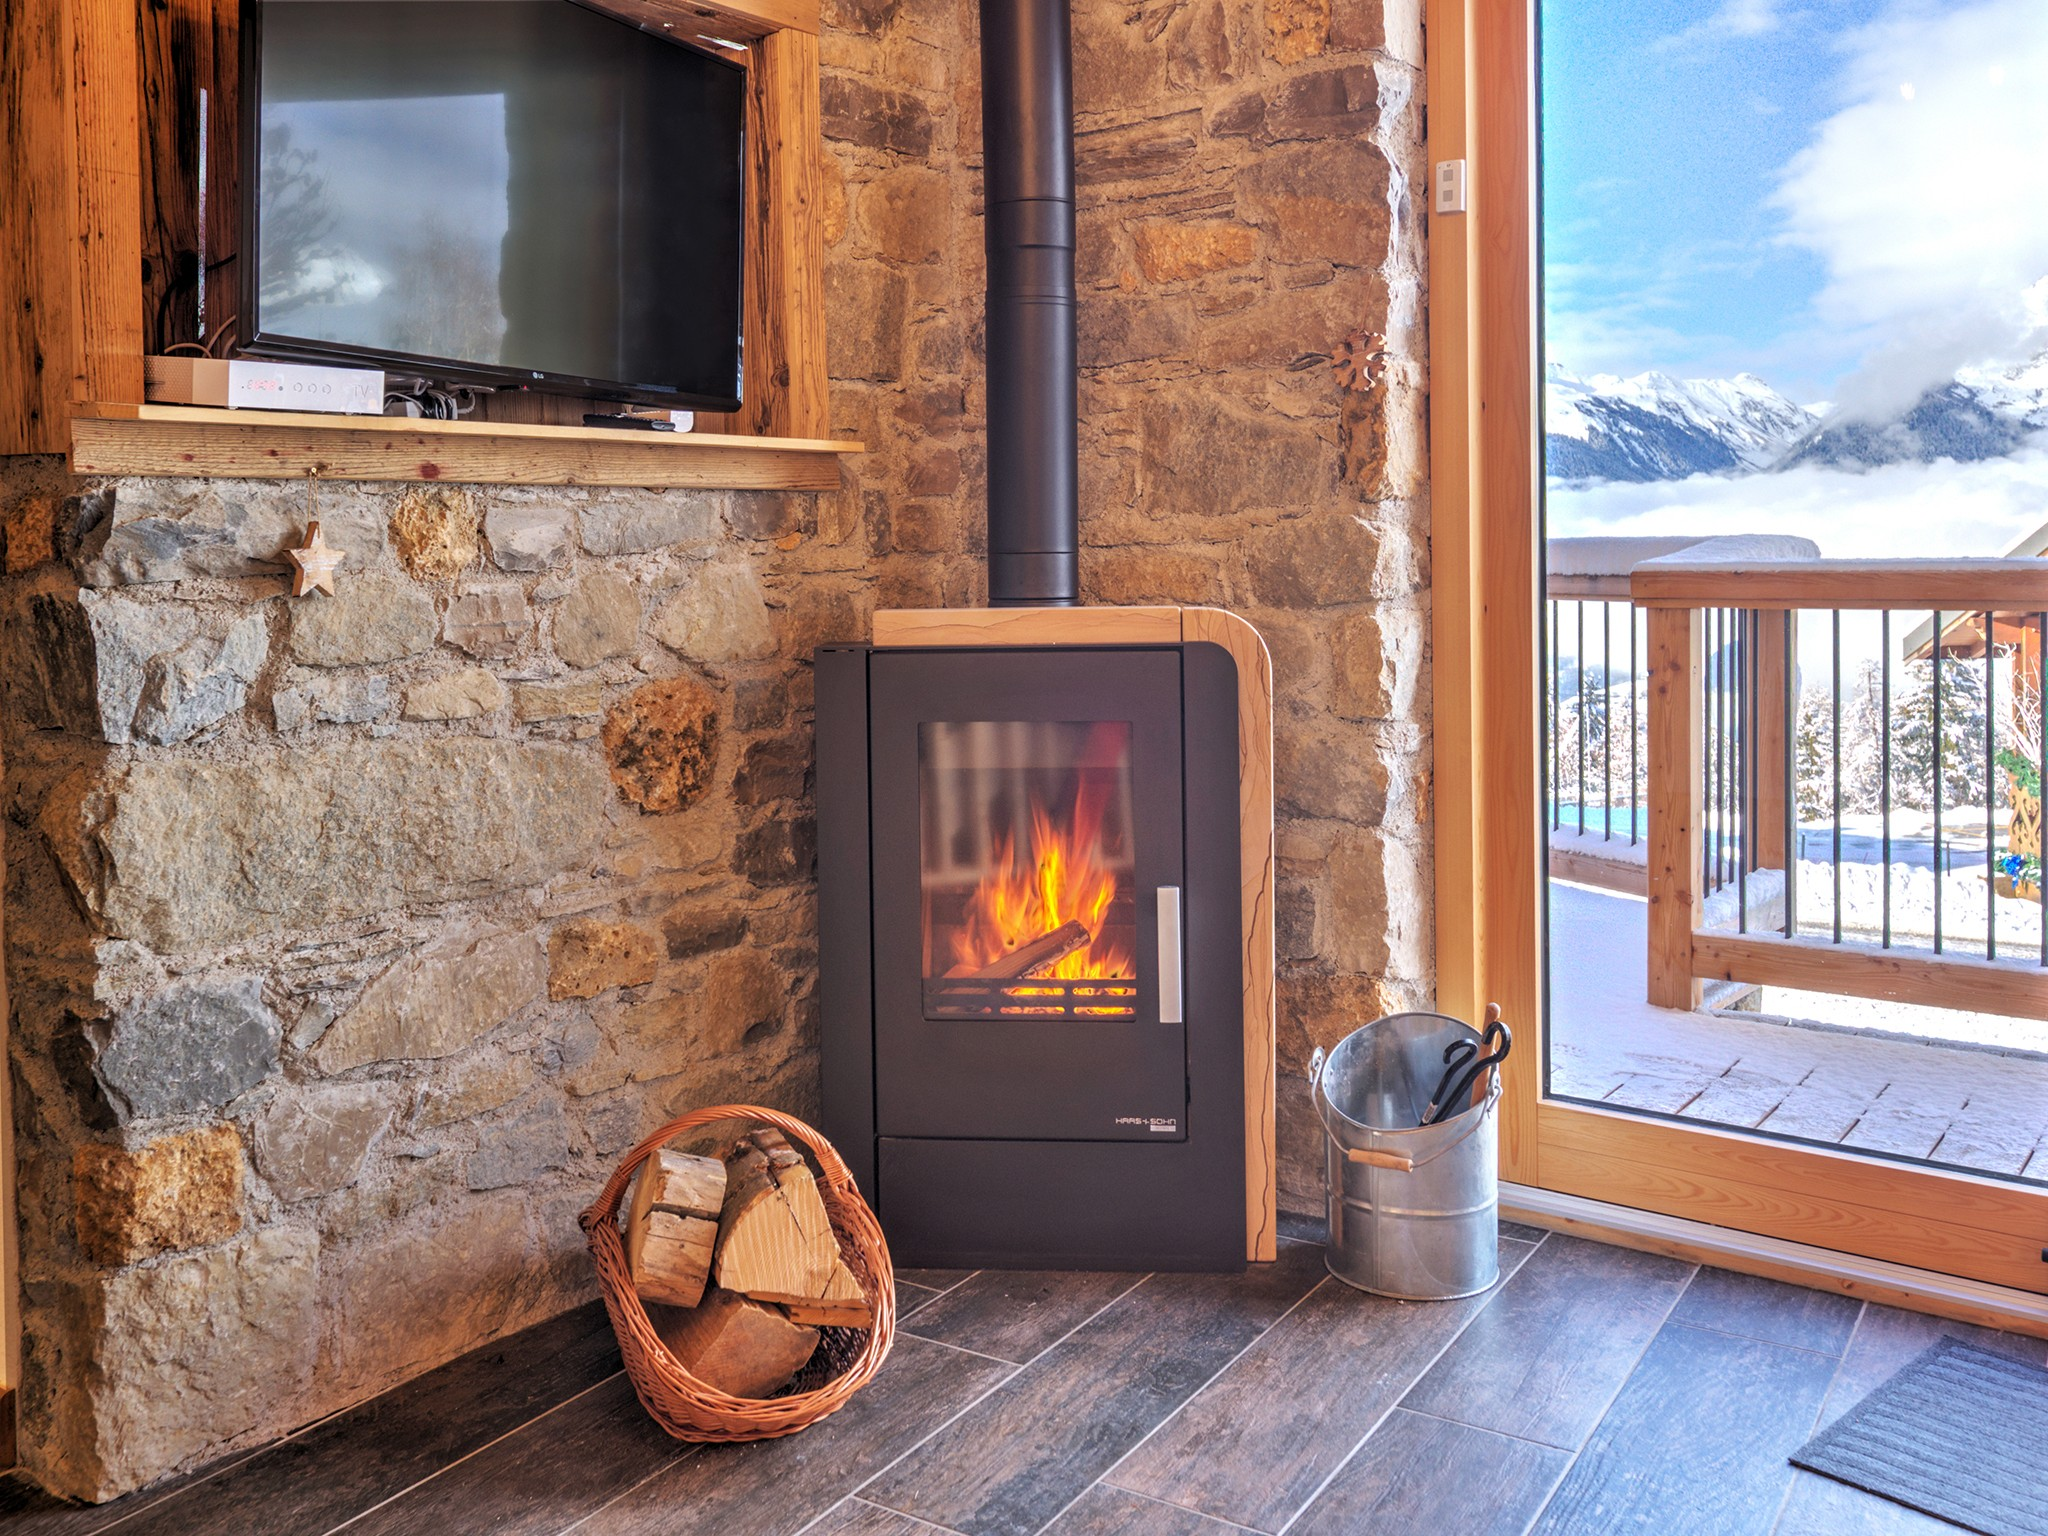 Chalet Paradise Star - fireplace